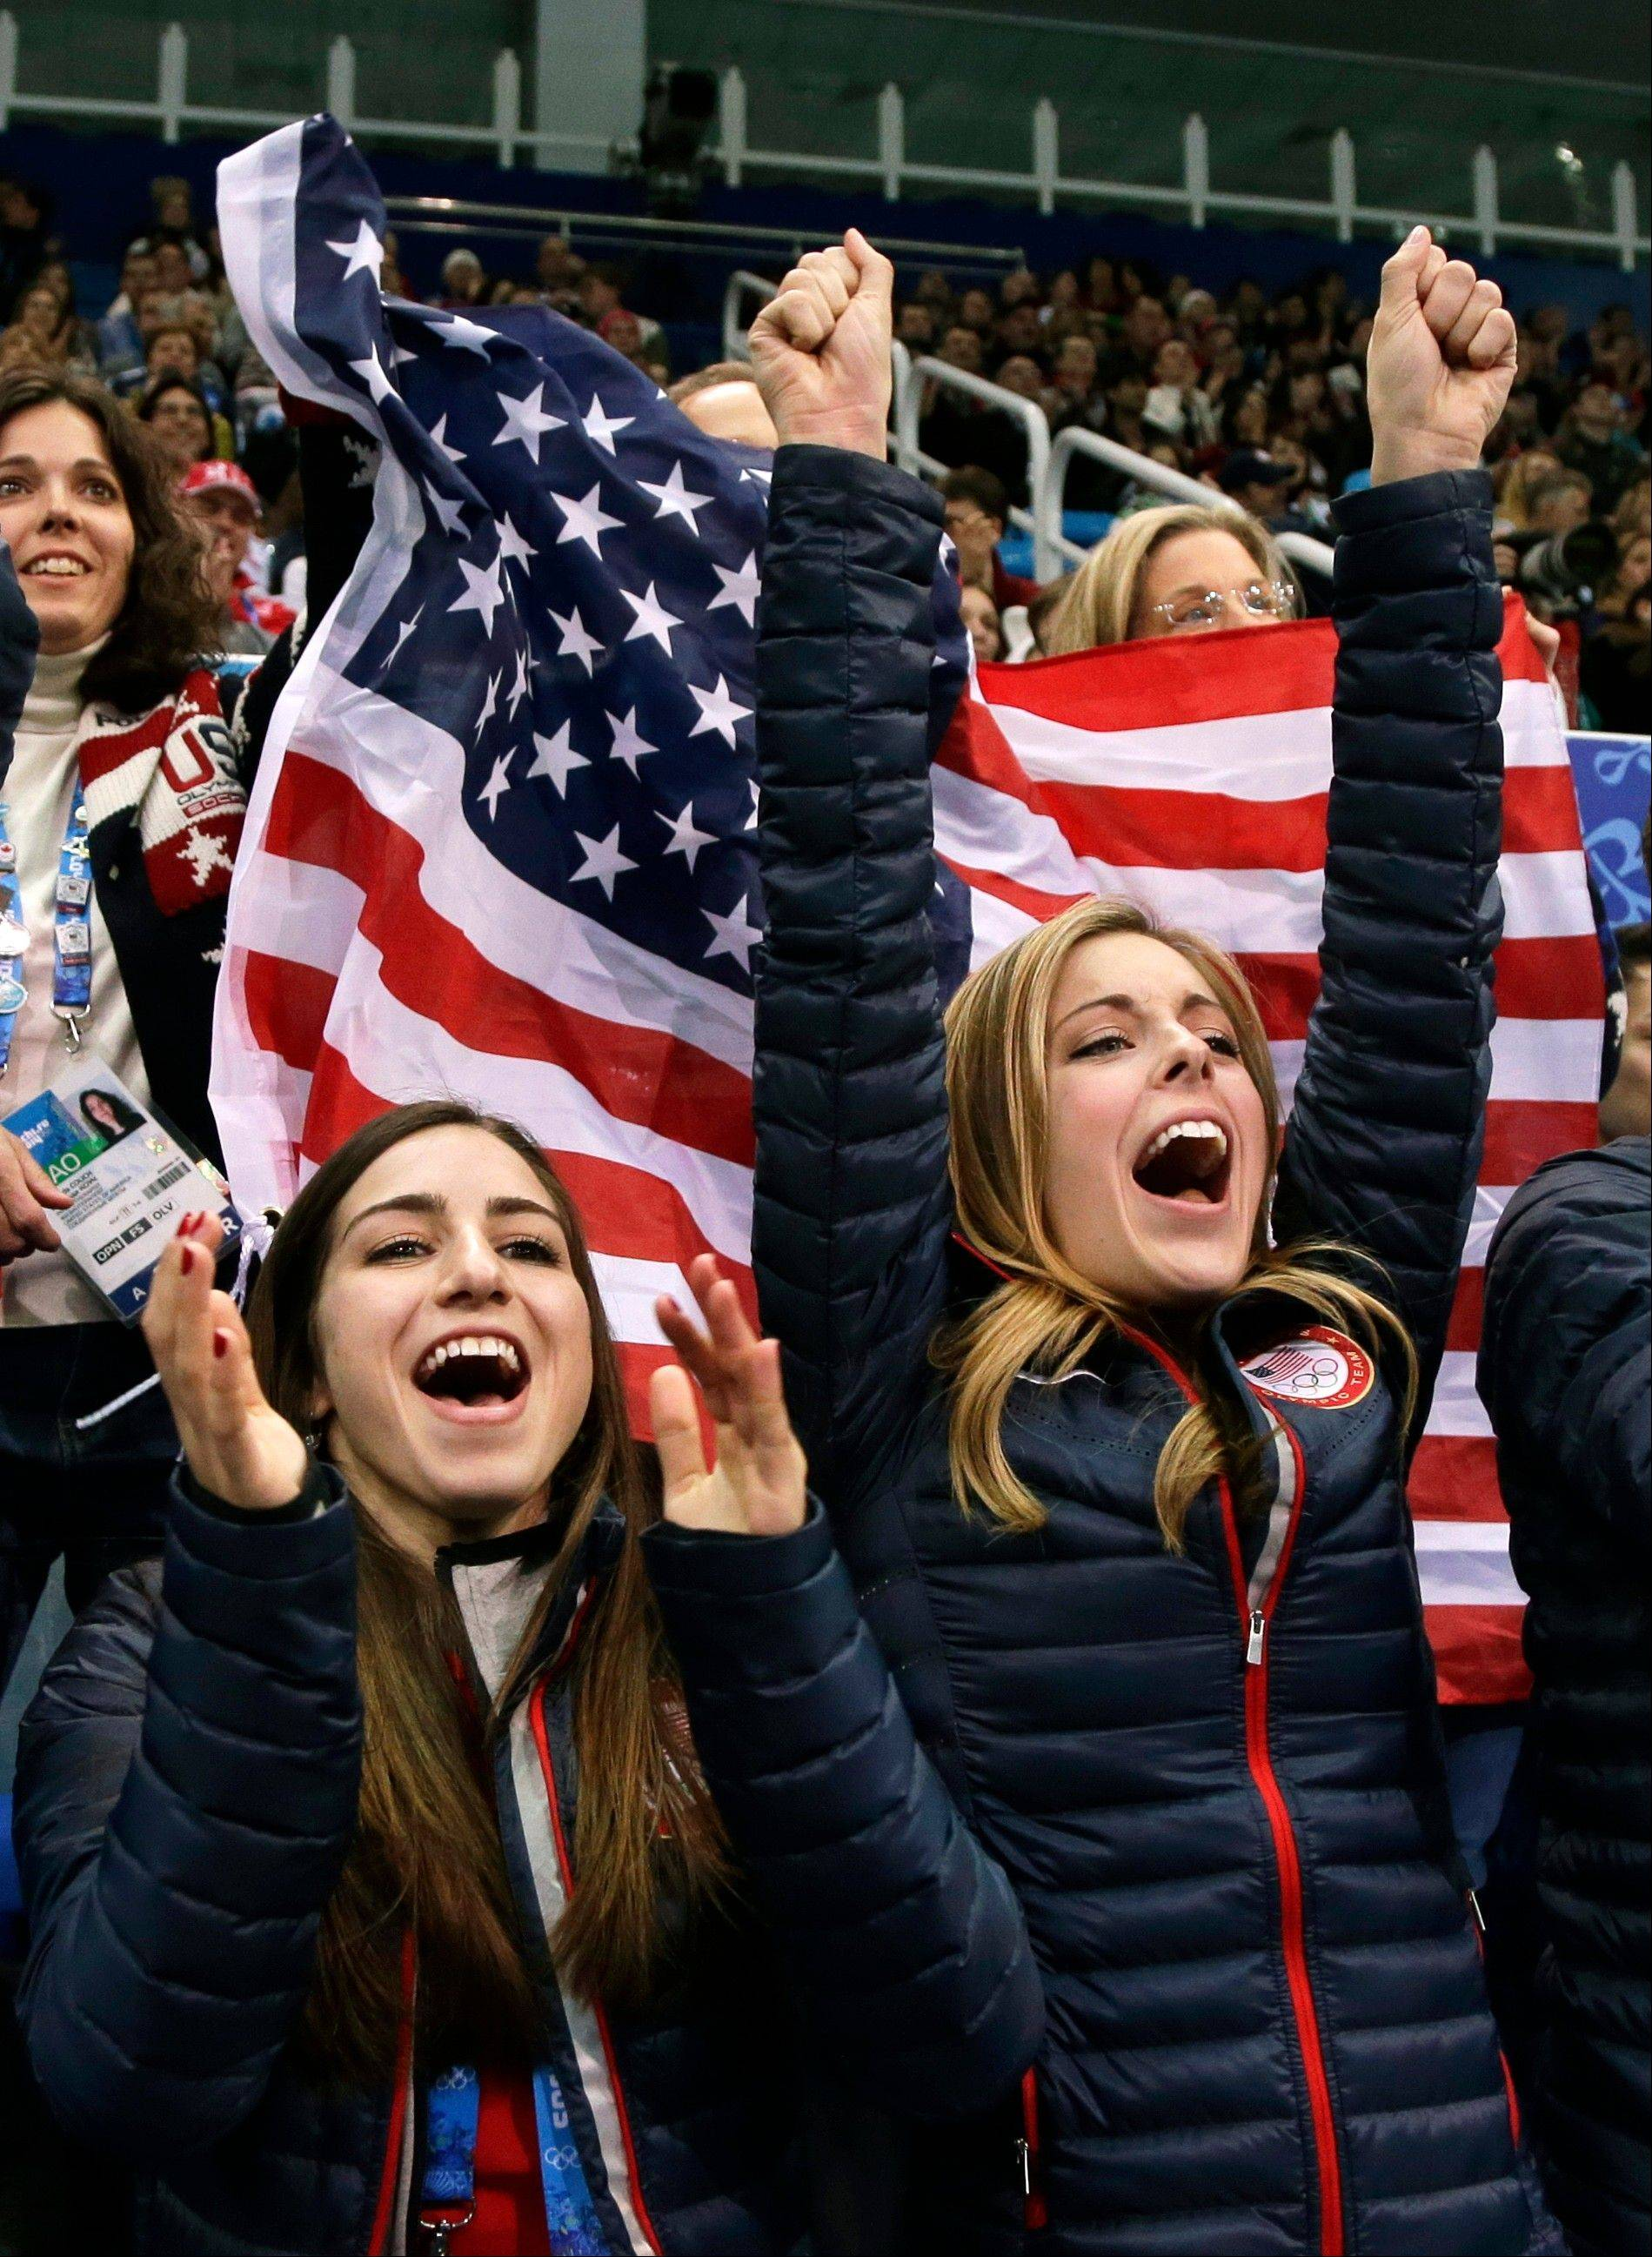 Marissa Castelli, left, and Ashley Wagner cheer for Jason Brown of the United States as he compete in the men's team free skate figure skating competition at the Iceberg Skating Palace during the 2014 Winter Olympics, Sunday, Feb. 9, 2014, in Sochi, Russia.